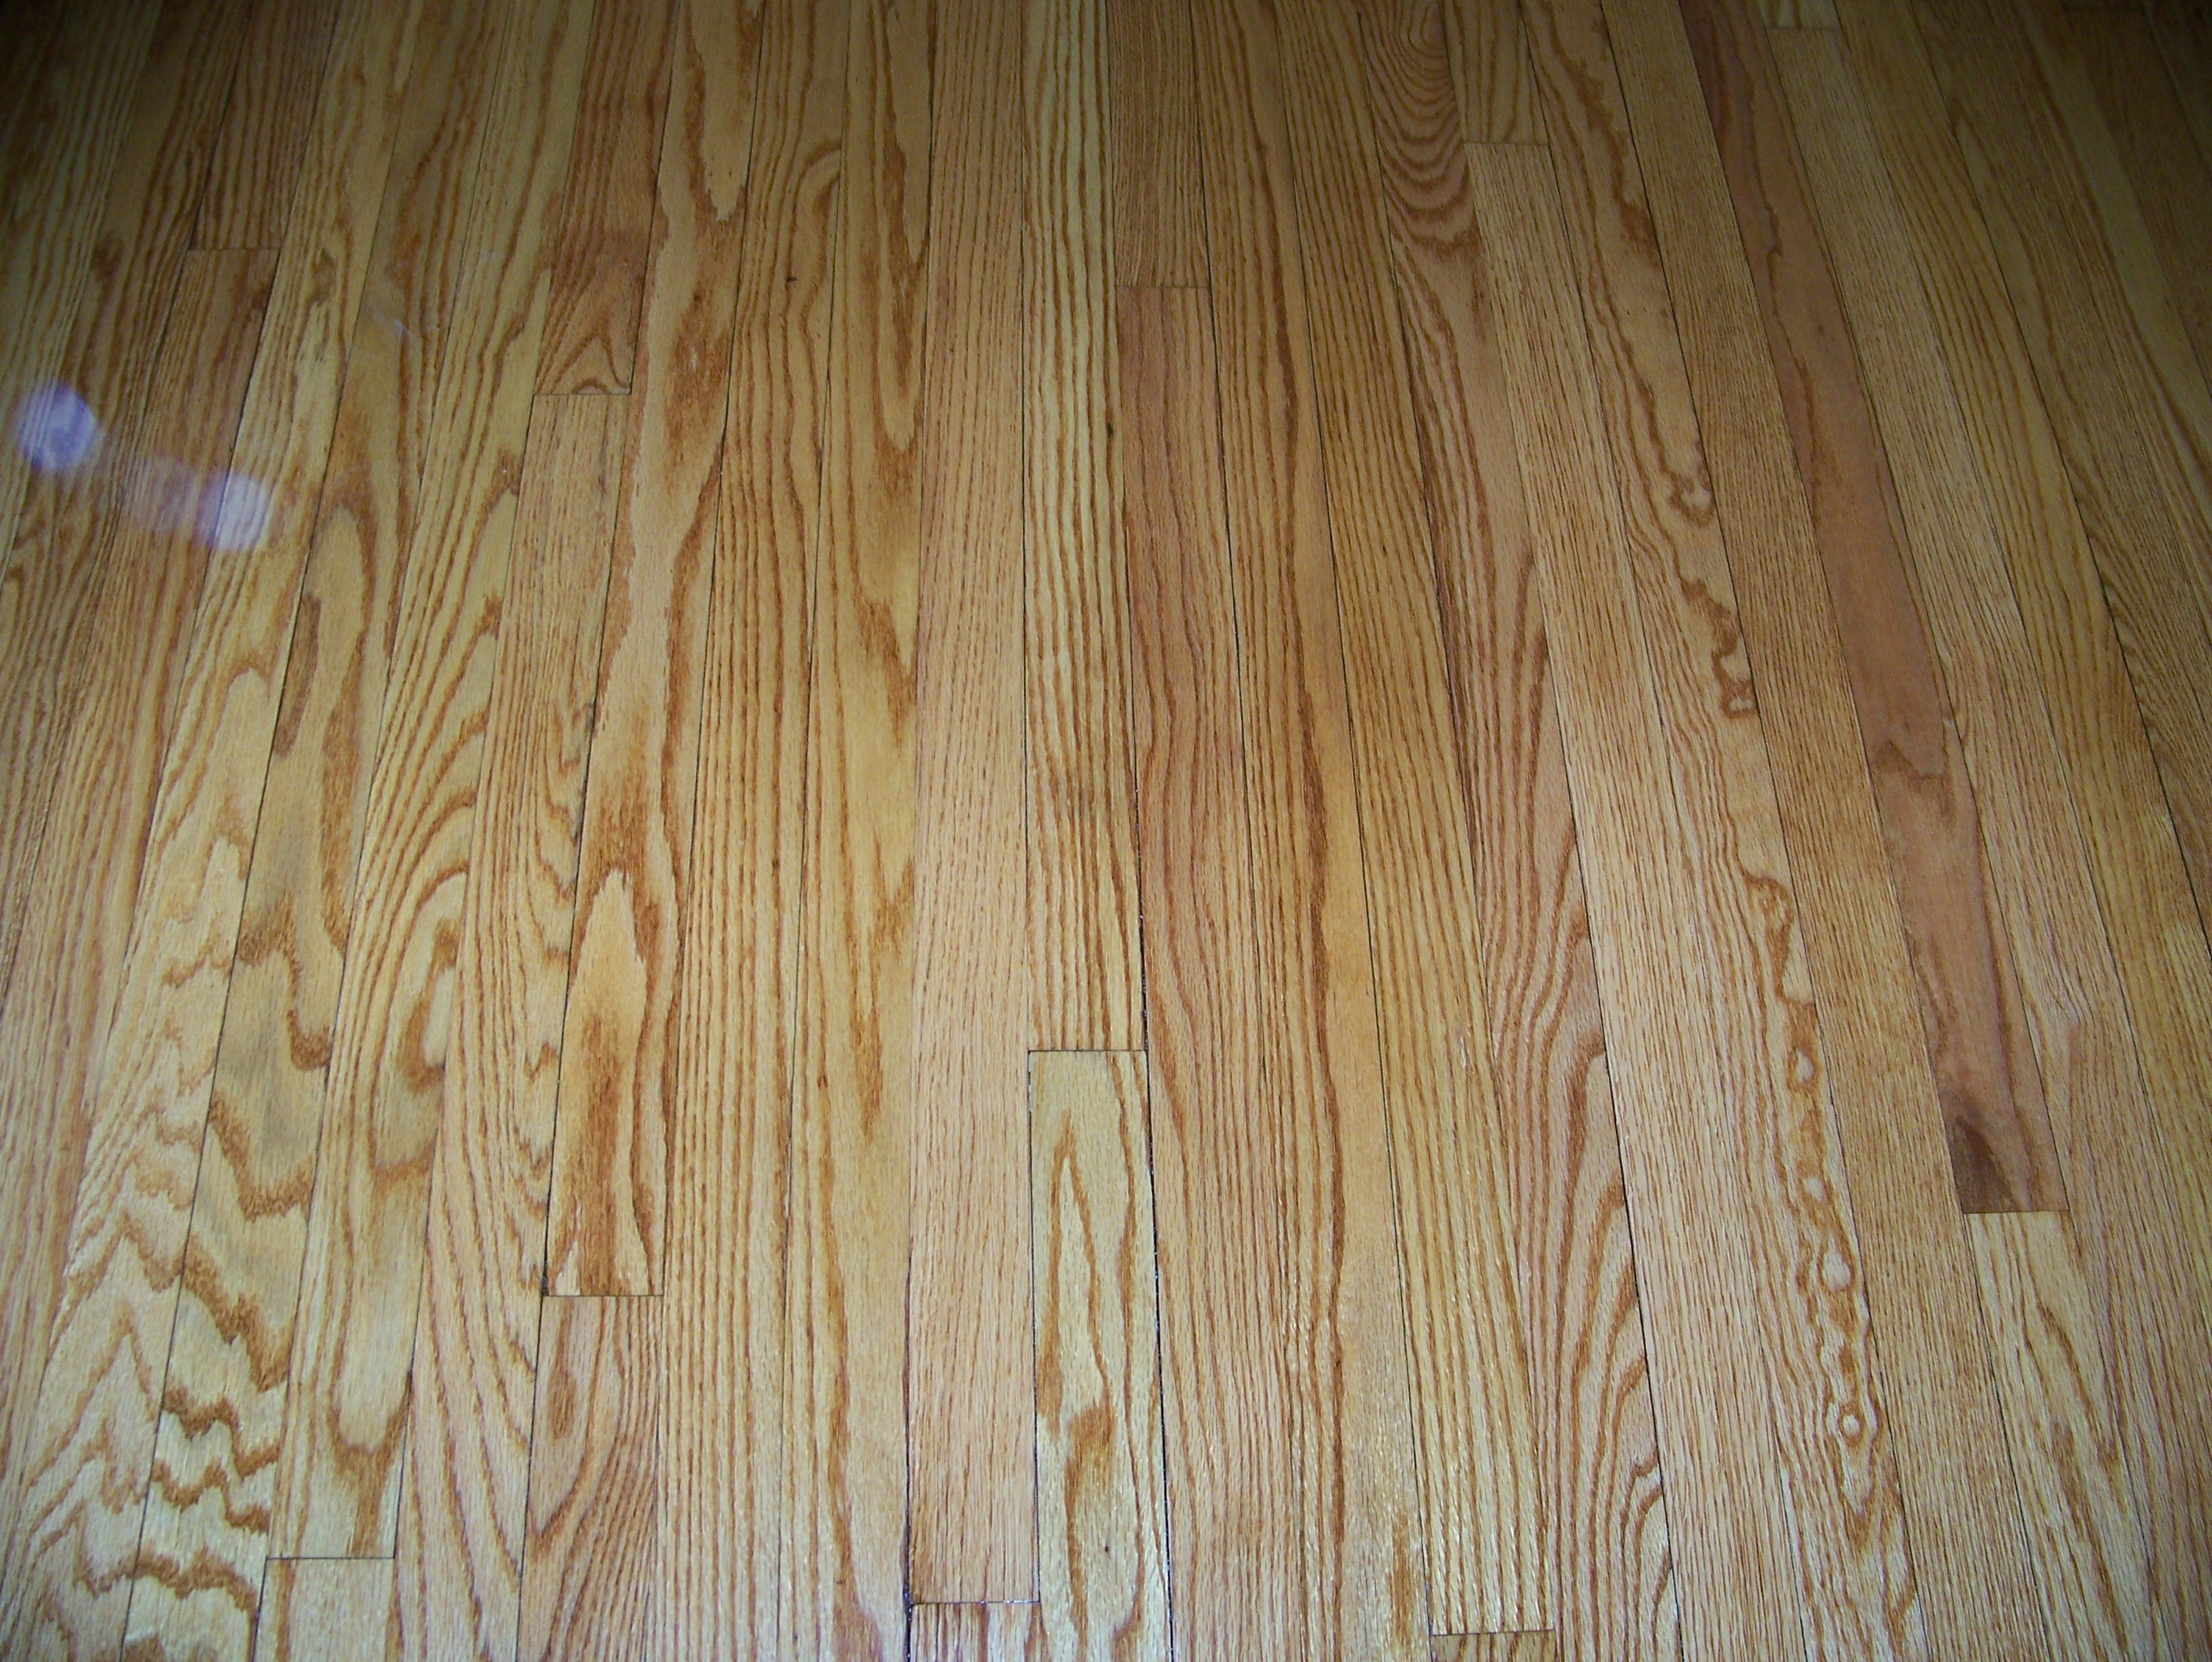 commercial hardwood flooring